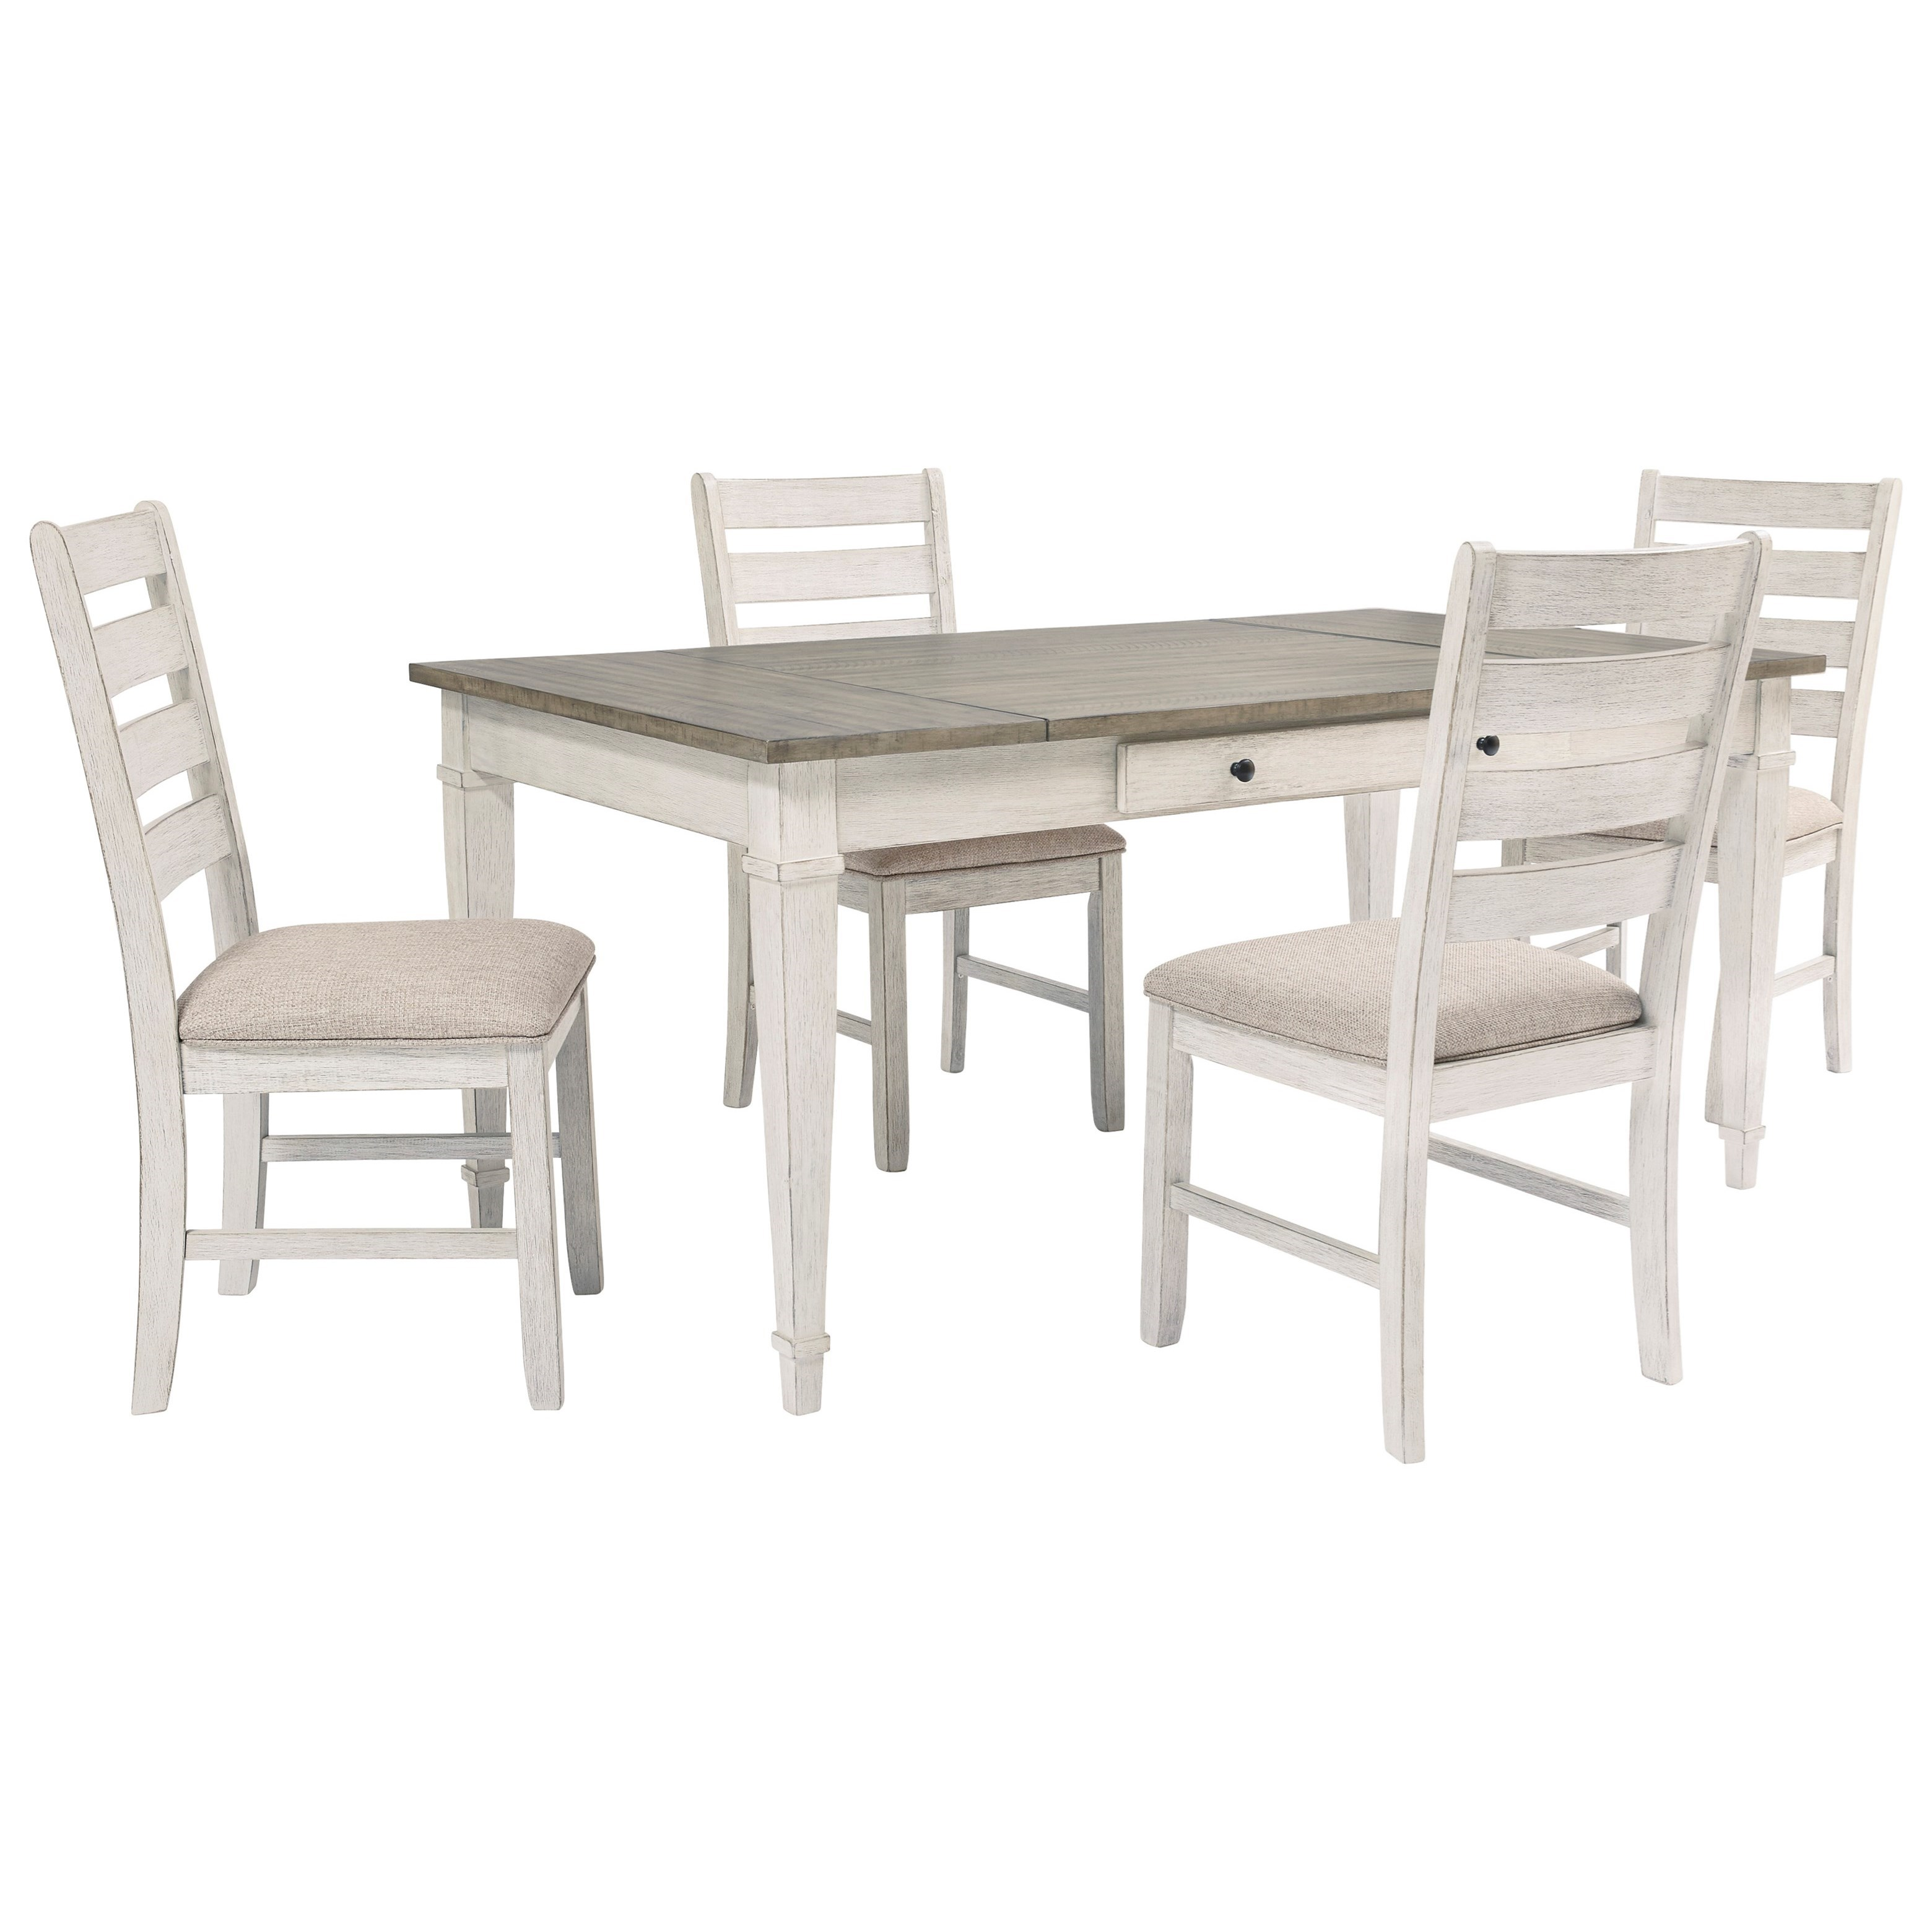 Signature Design By Ashley Skempton D394 25 4x01 5 Piece Rect Dining Room Table W Storage Furniture And Appliancemart Dining 5 Piece Sets